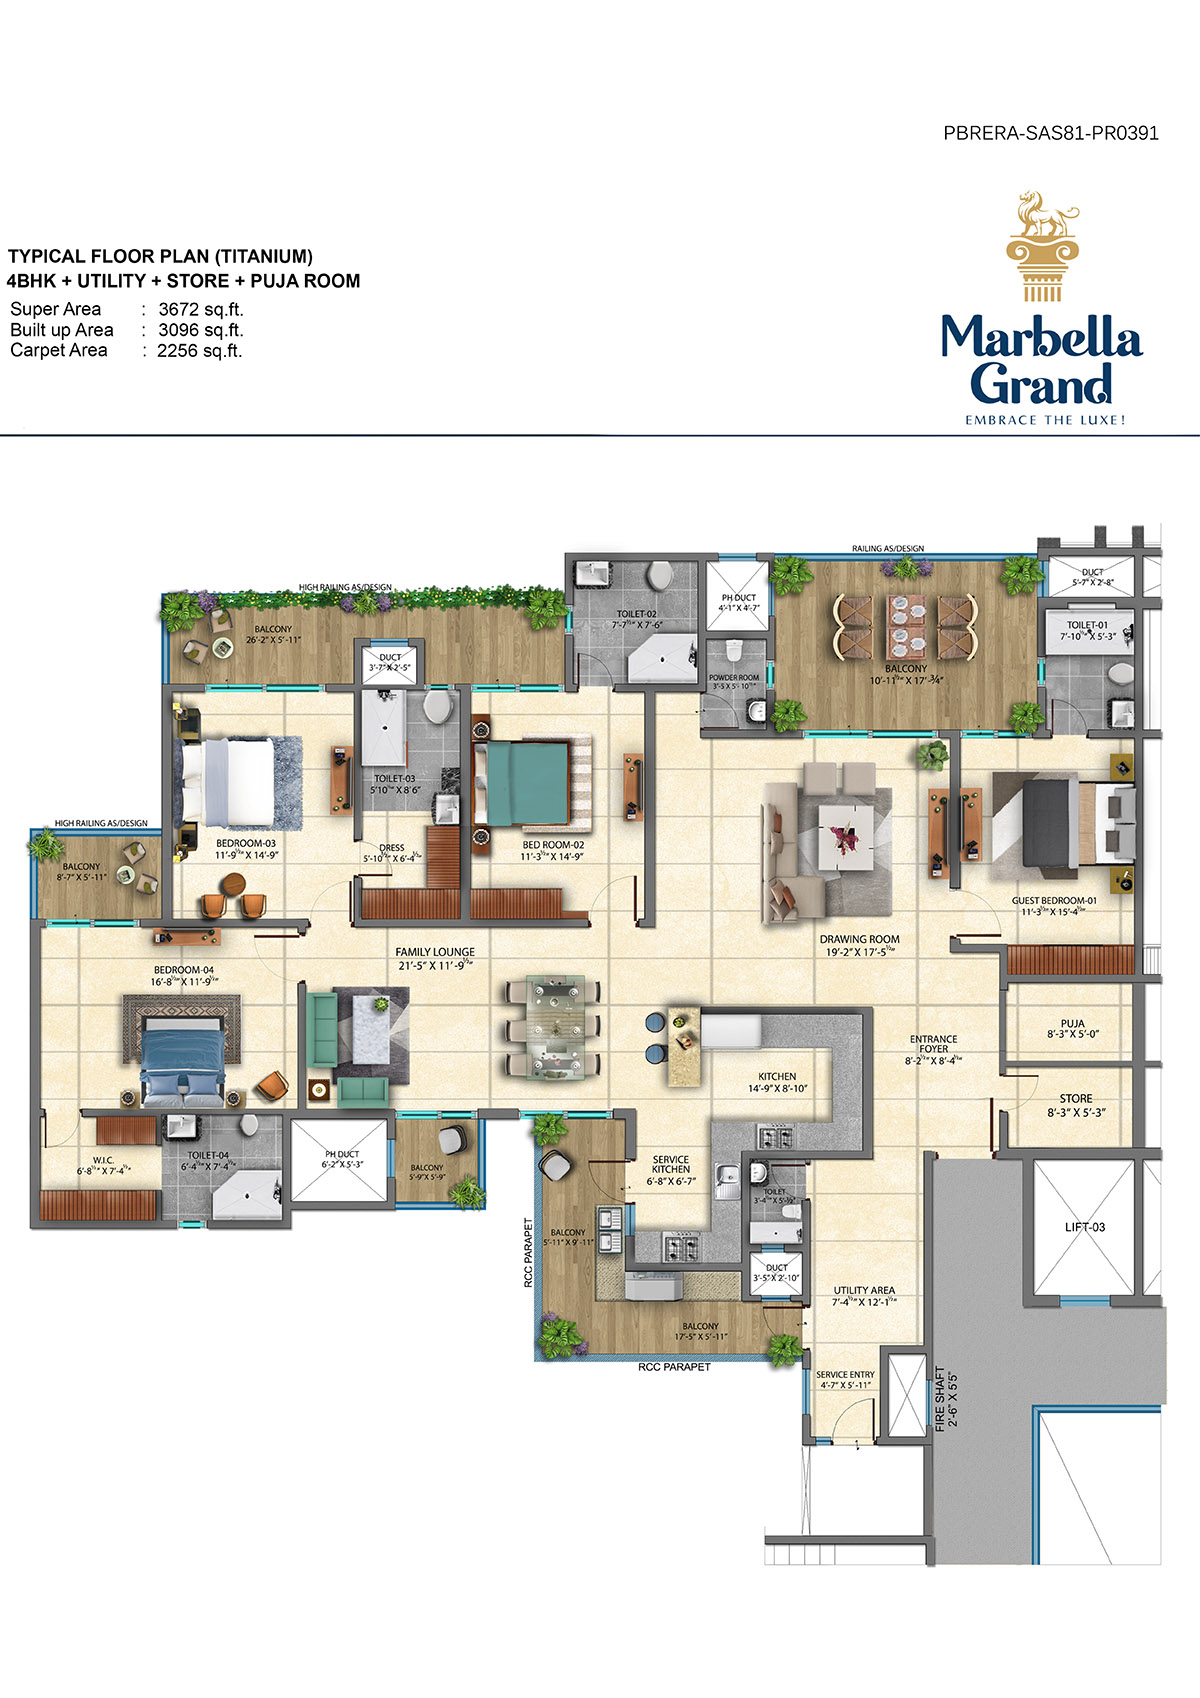 4BHK + UTILITY + TYPICAL FLOOR PLAN